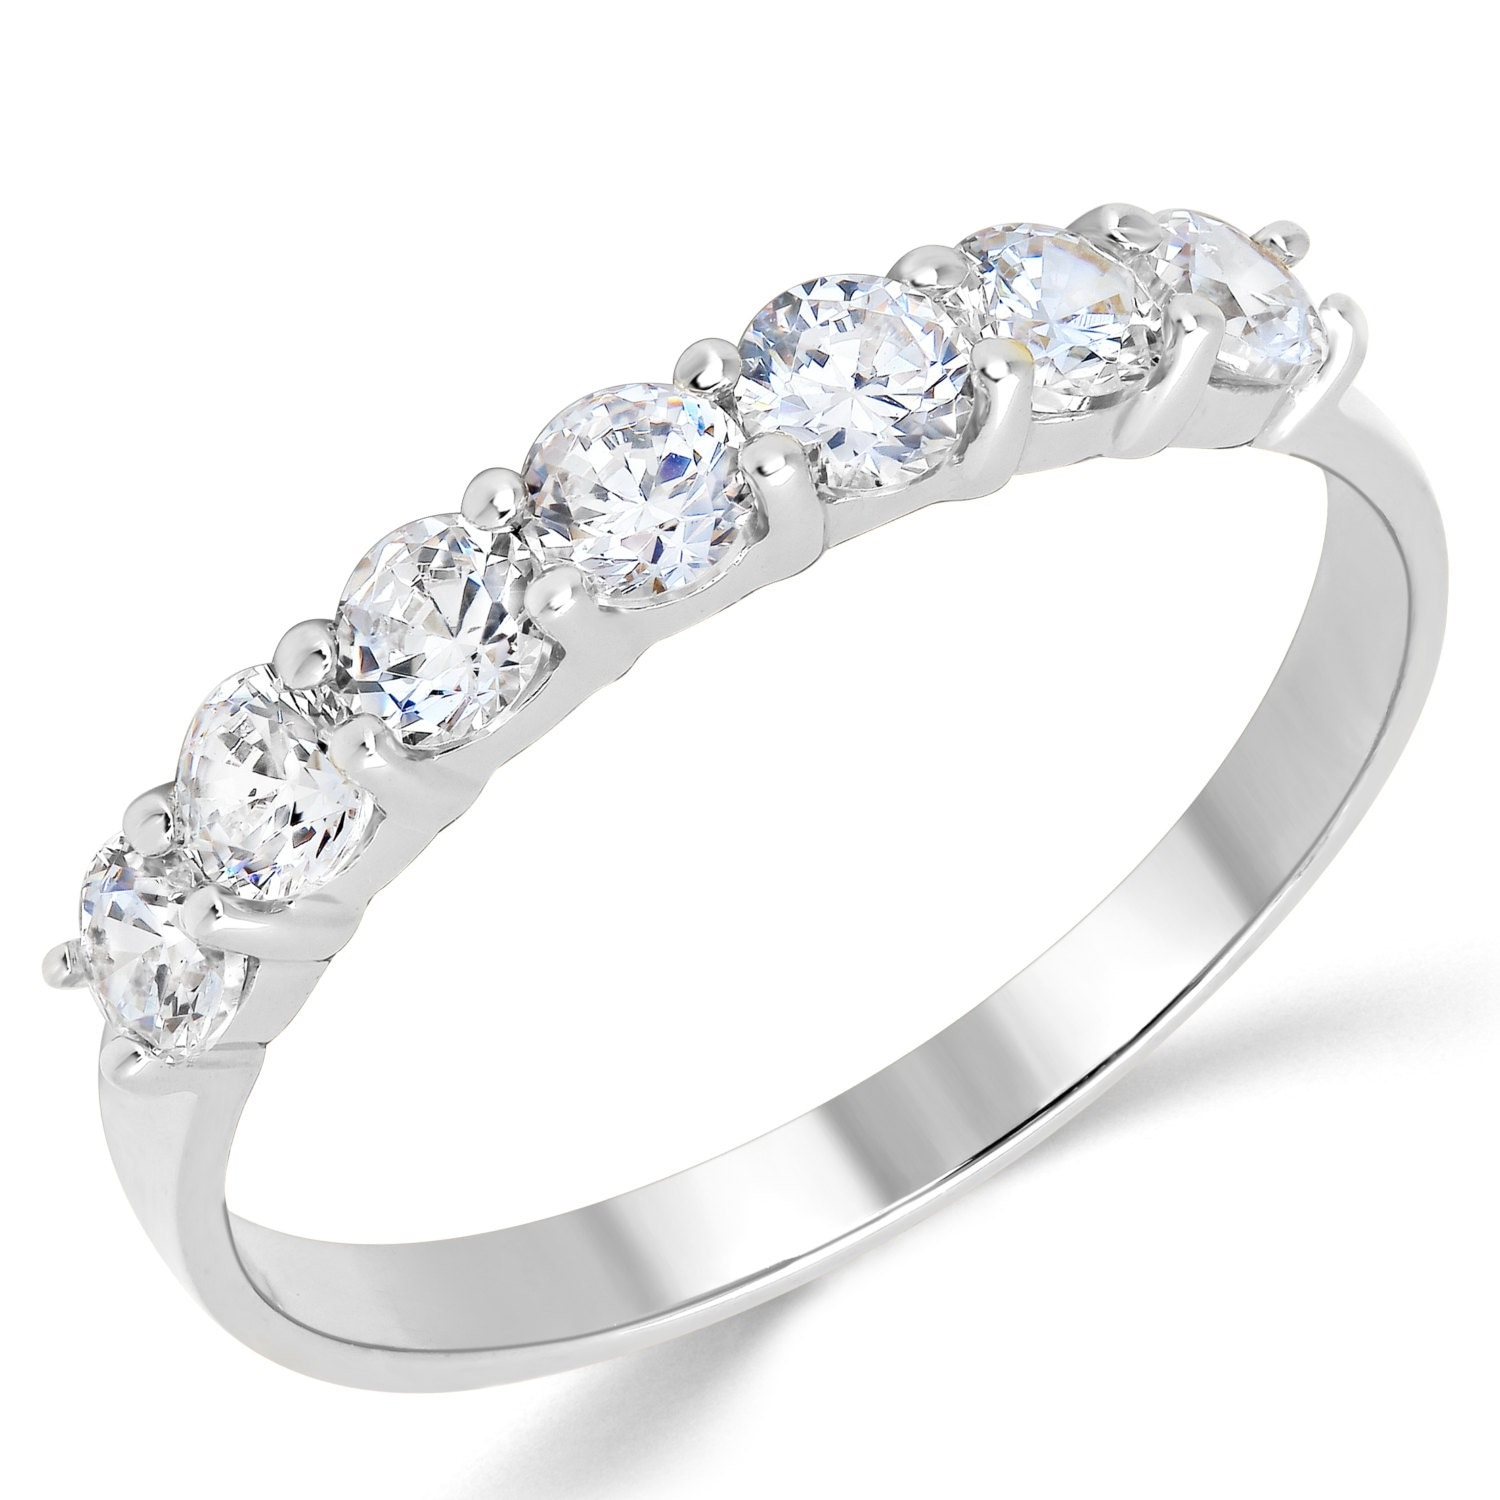 14k solid white gold cz cubic zirconia anniversary ring band